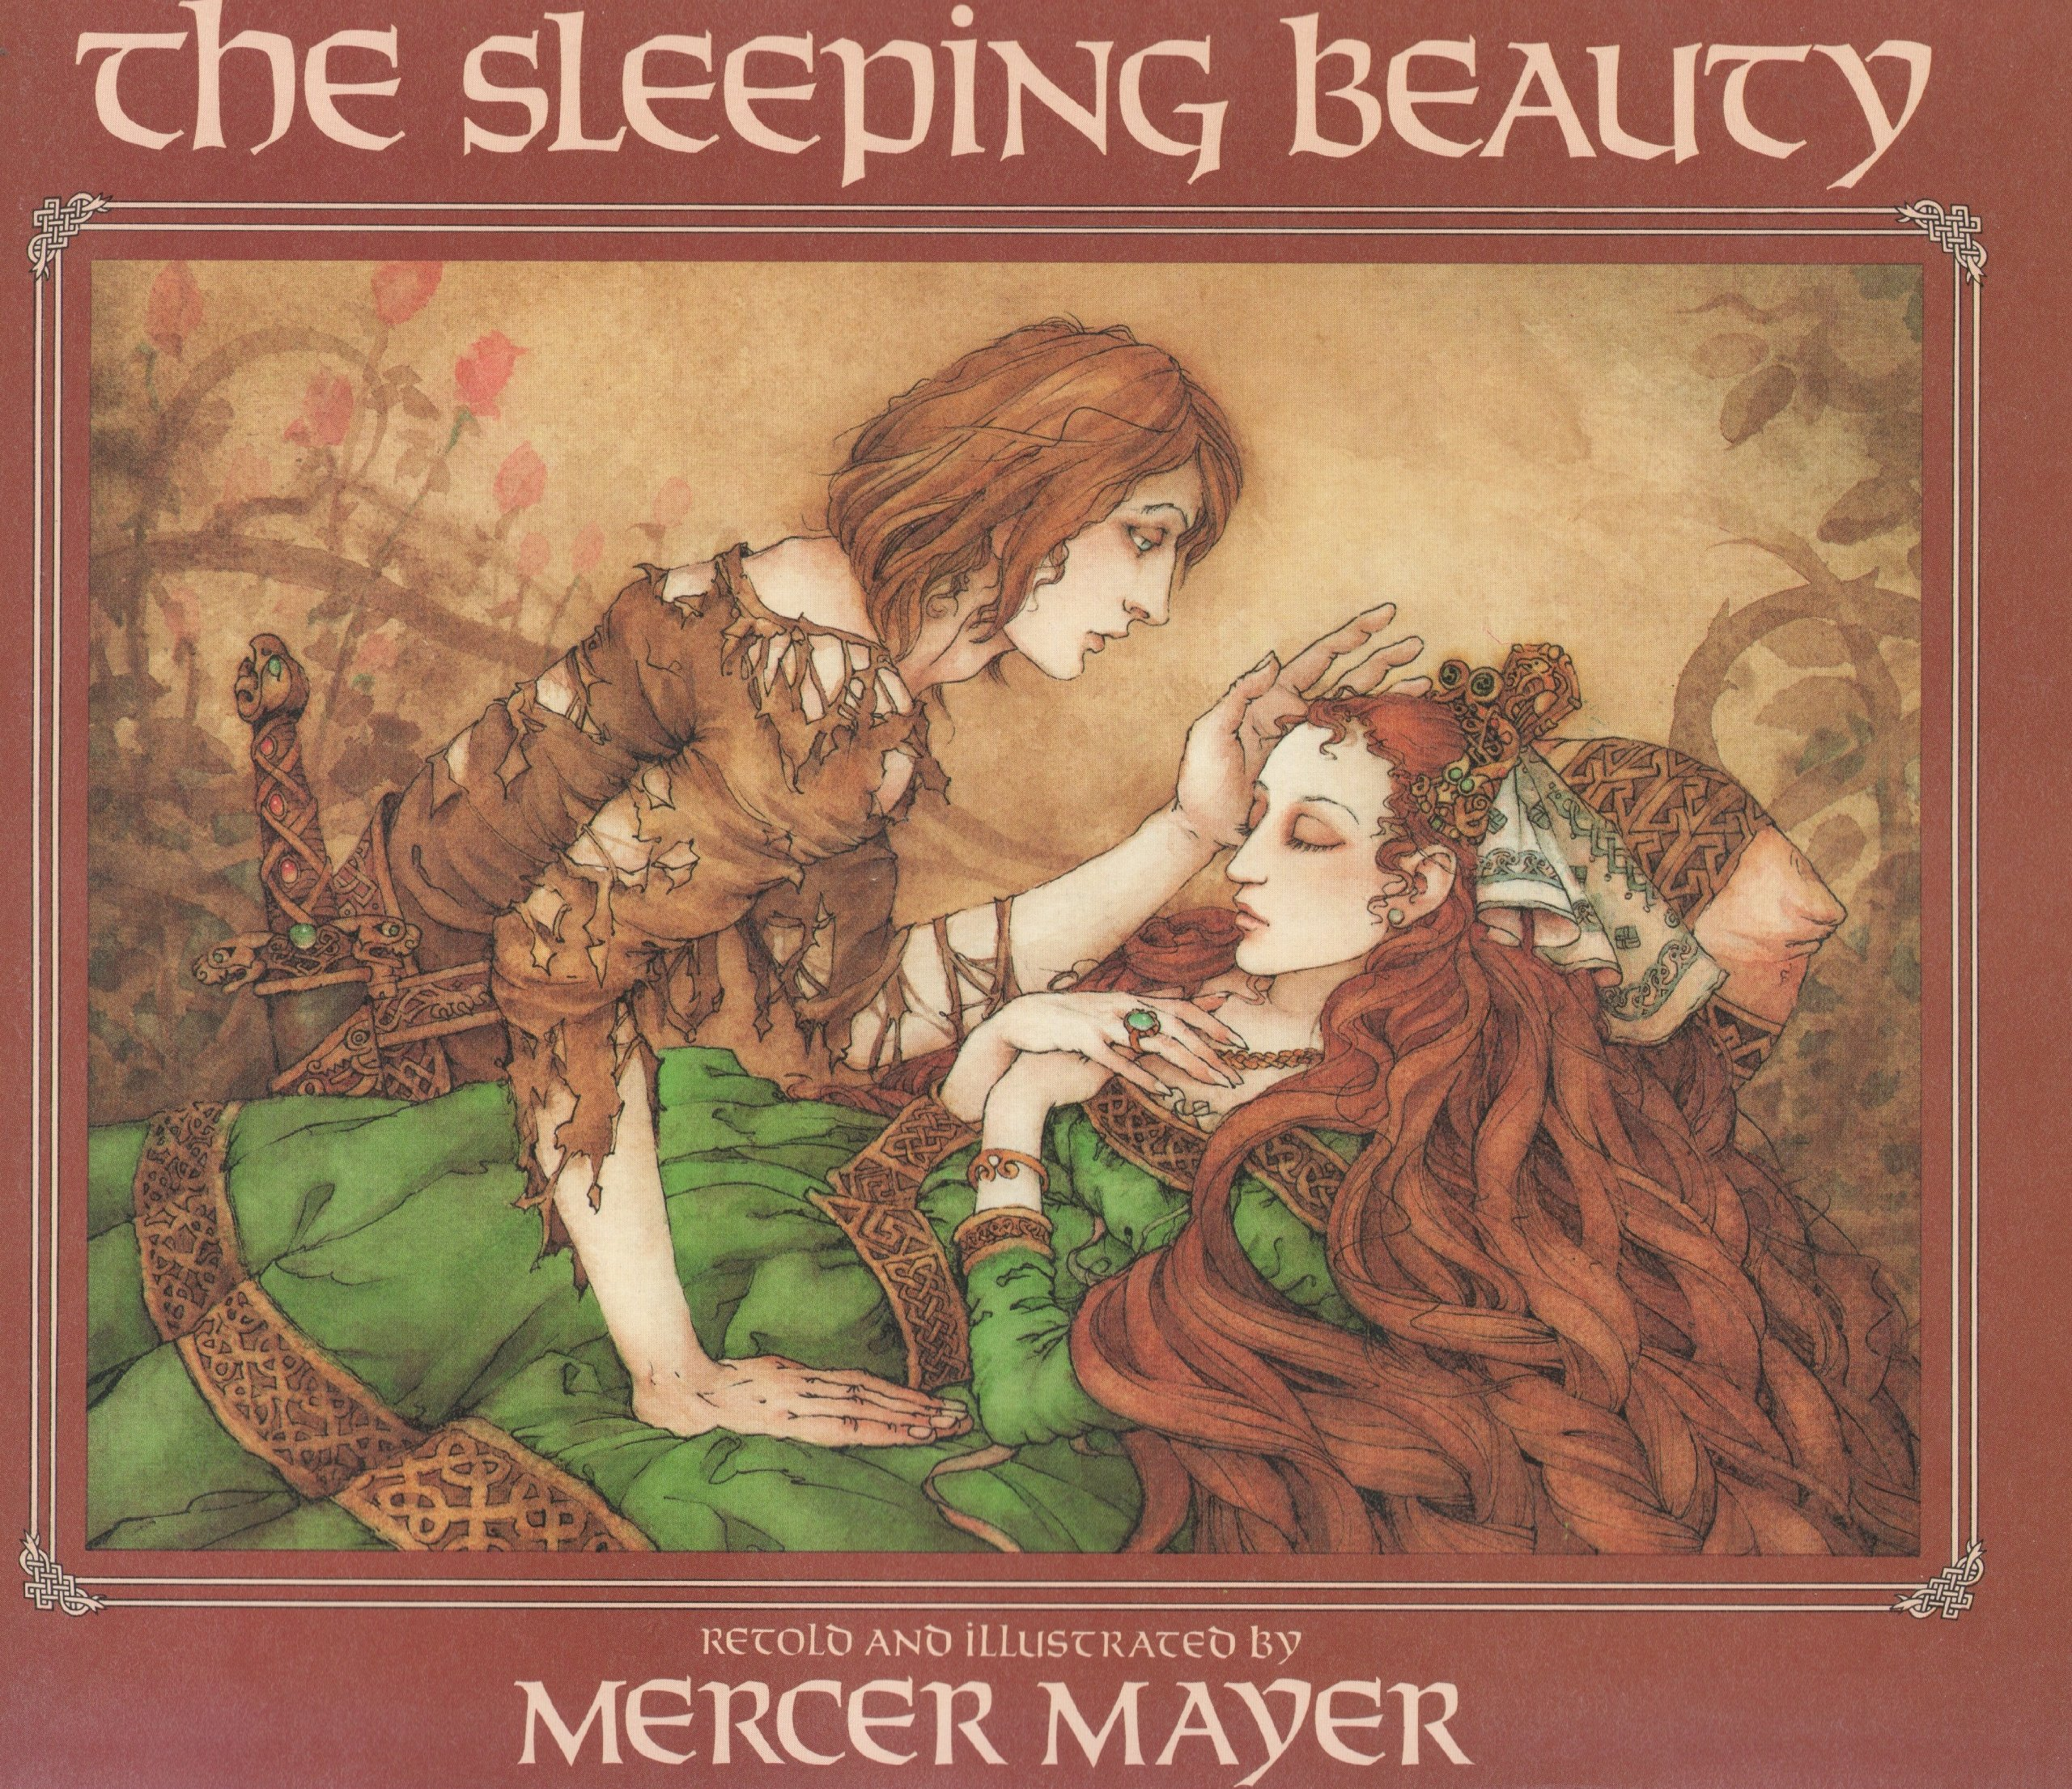 Image result for The sleeping beauty mercer mayer